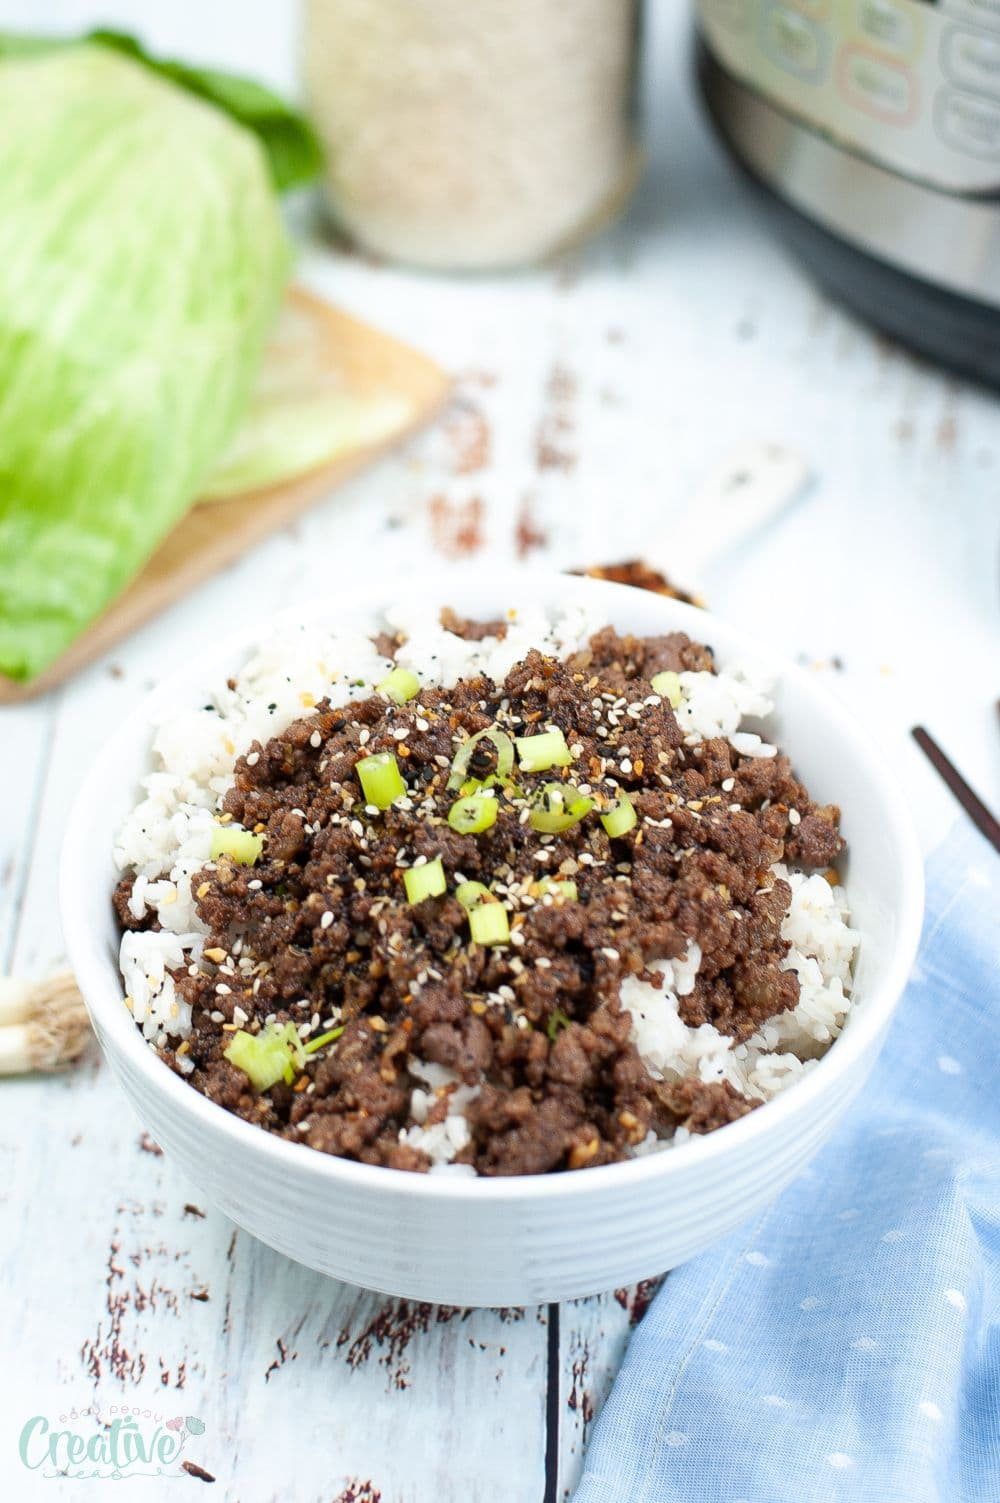 Image of Korean beef and rice recipe served in a white bowl next to an Instant Pot